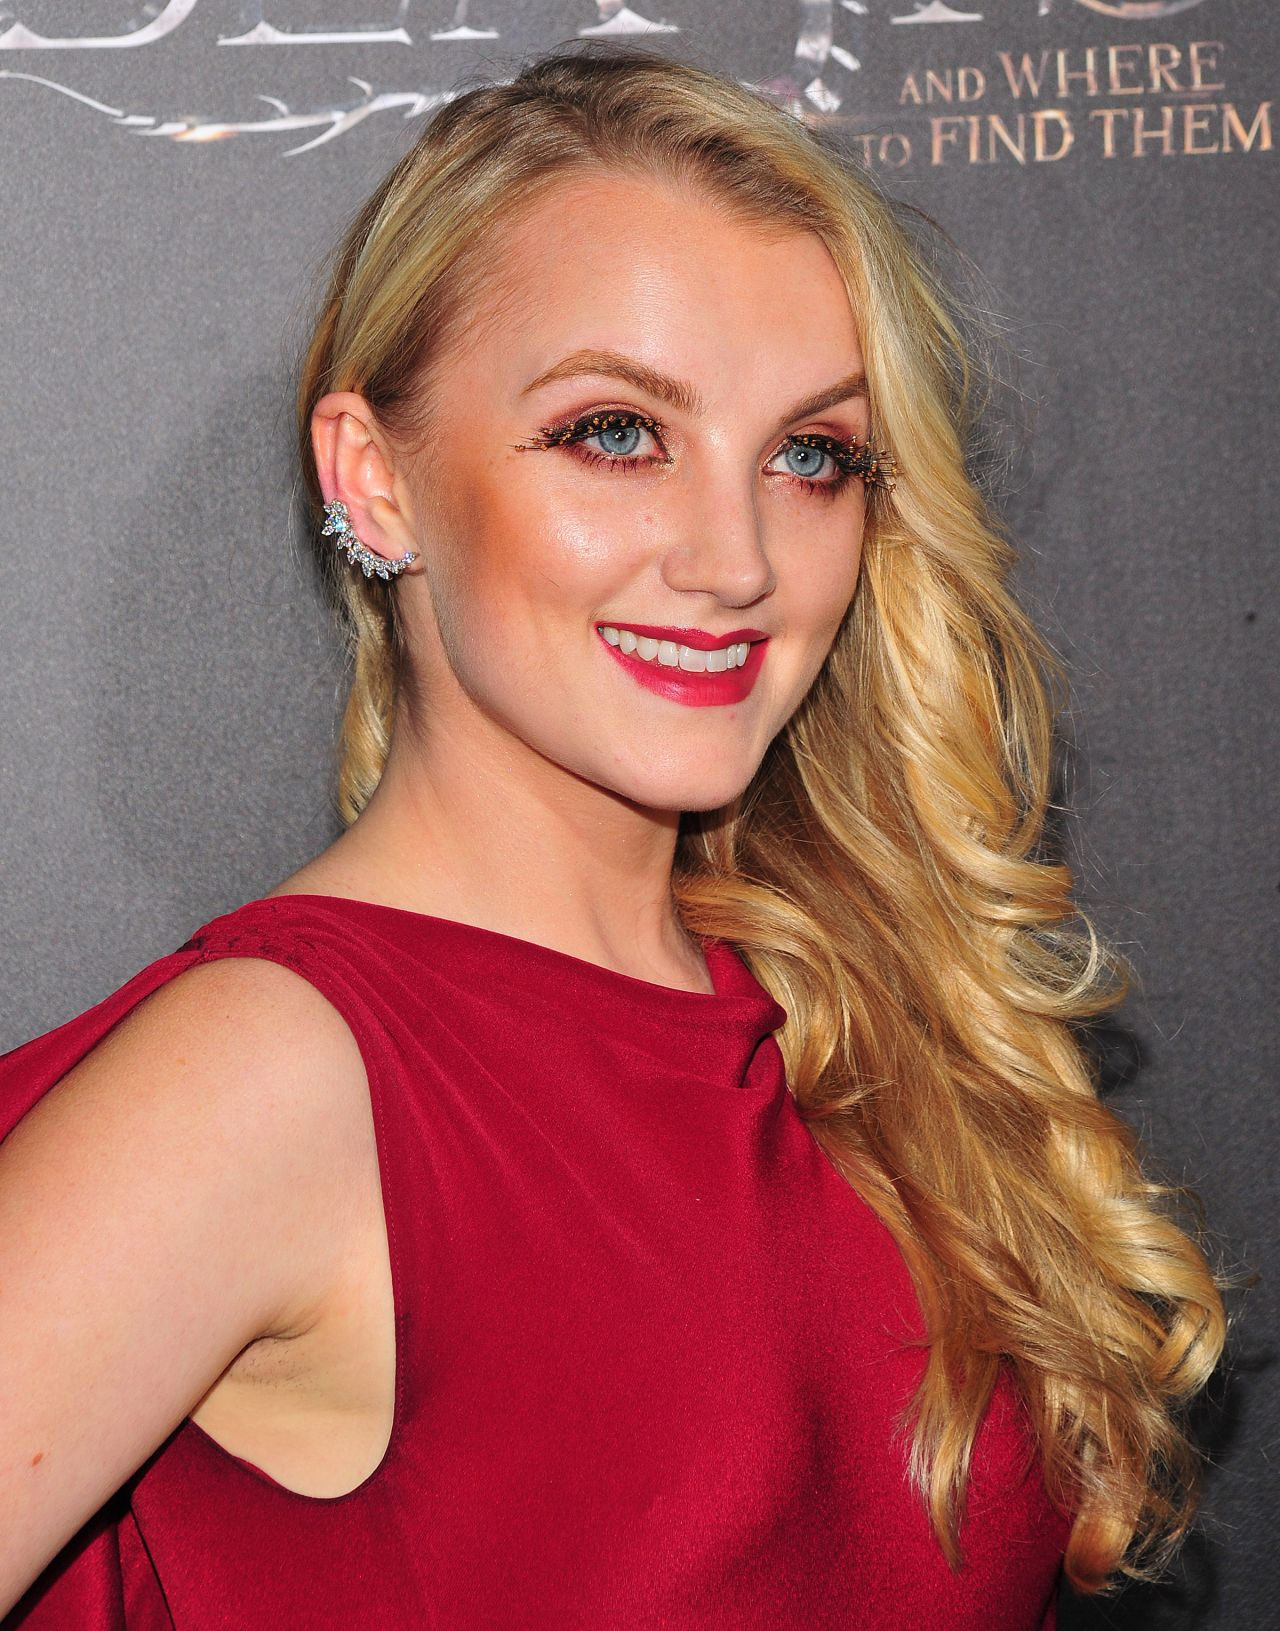 Evanna Lynch Fantastic Beasts And Where To Find Them